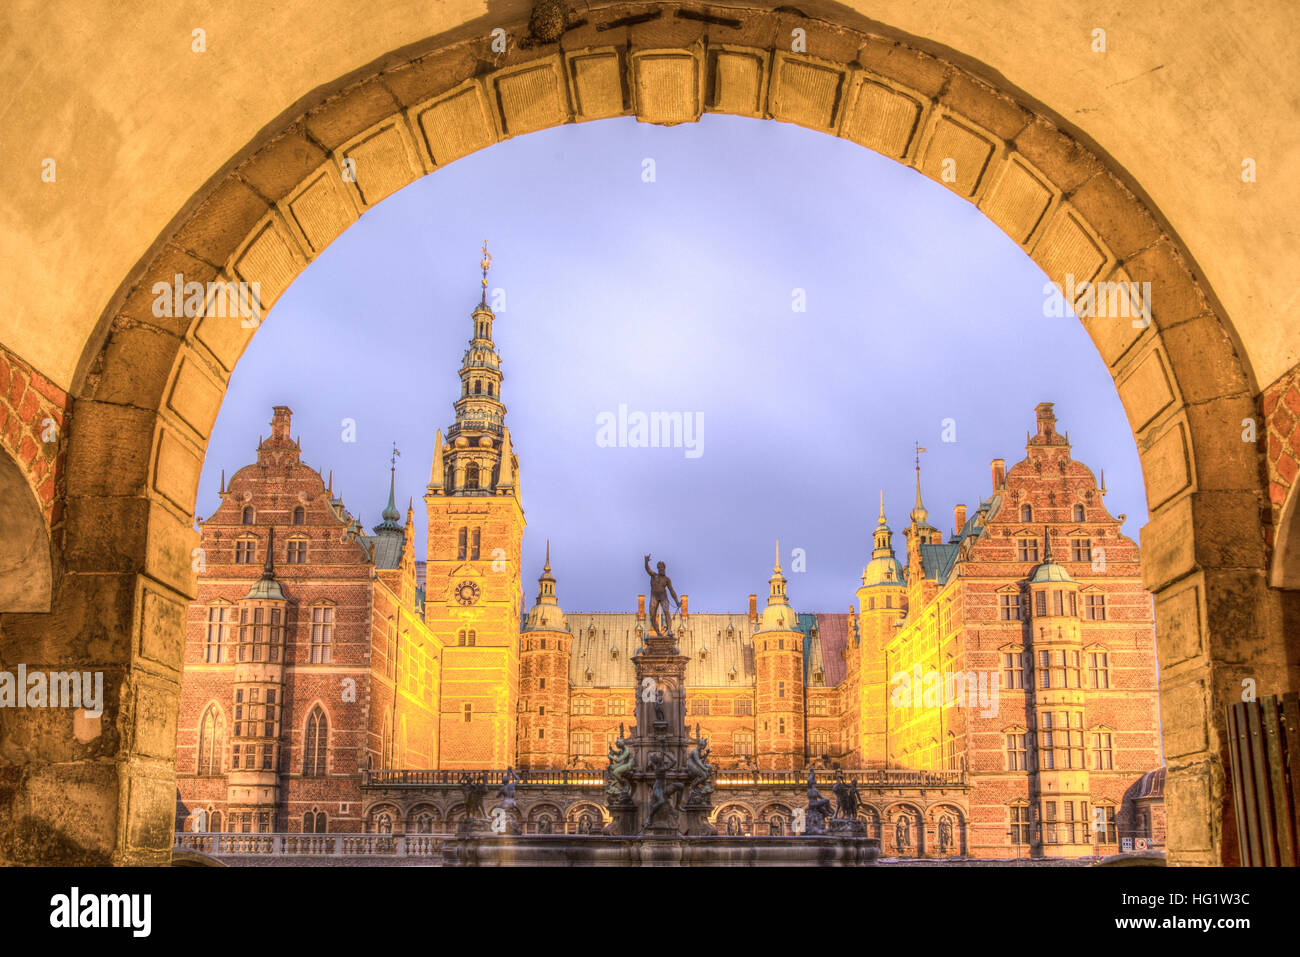 Hillerod, Denmark - December 29, 2016: View of the illuminated Frederiksborg Palace through an arch - Stock Image